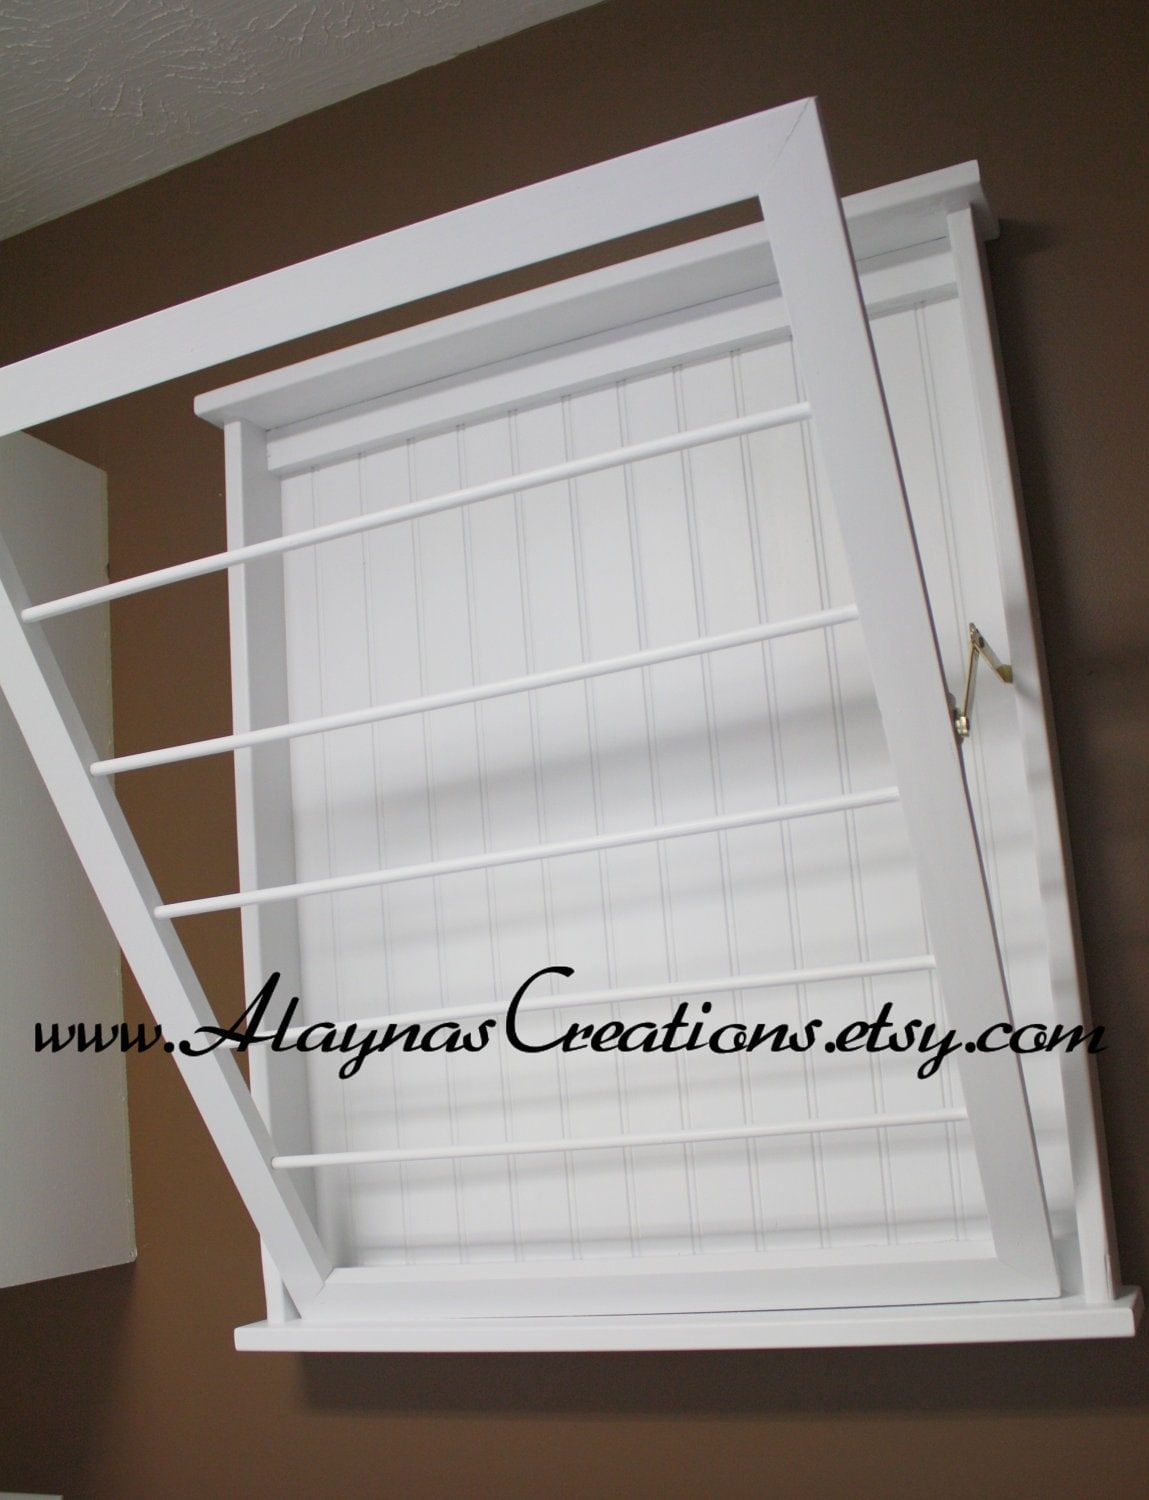 Wall Mounted Laundry Drying Rack by AlaynasCreations on Etsy